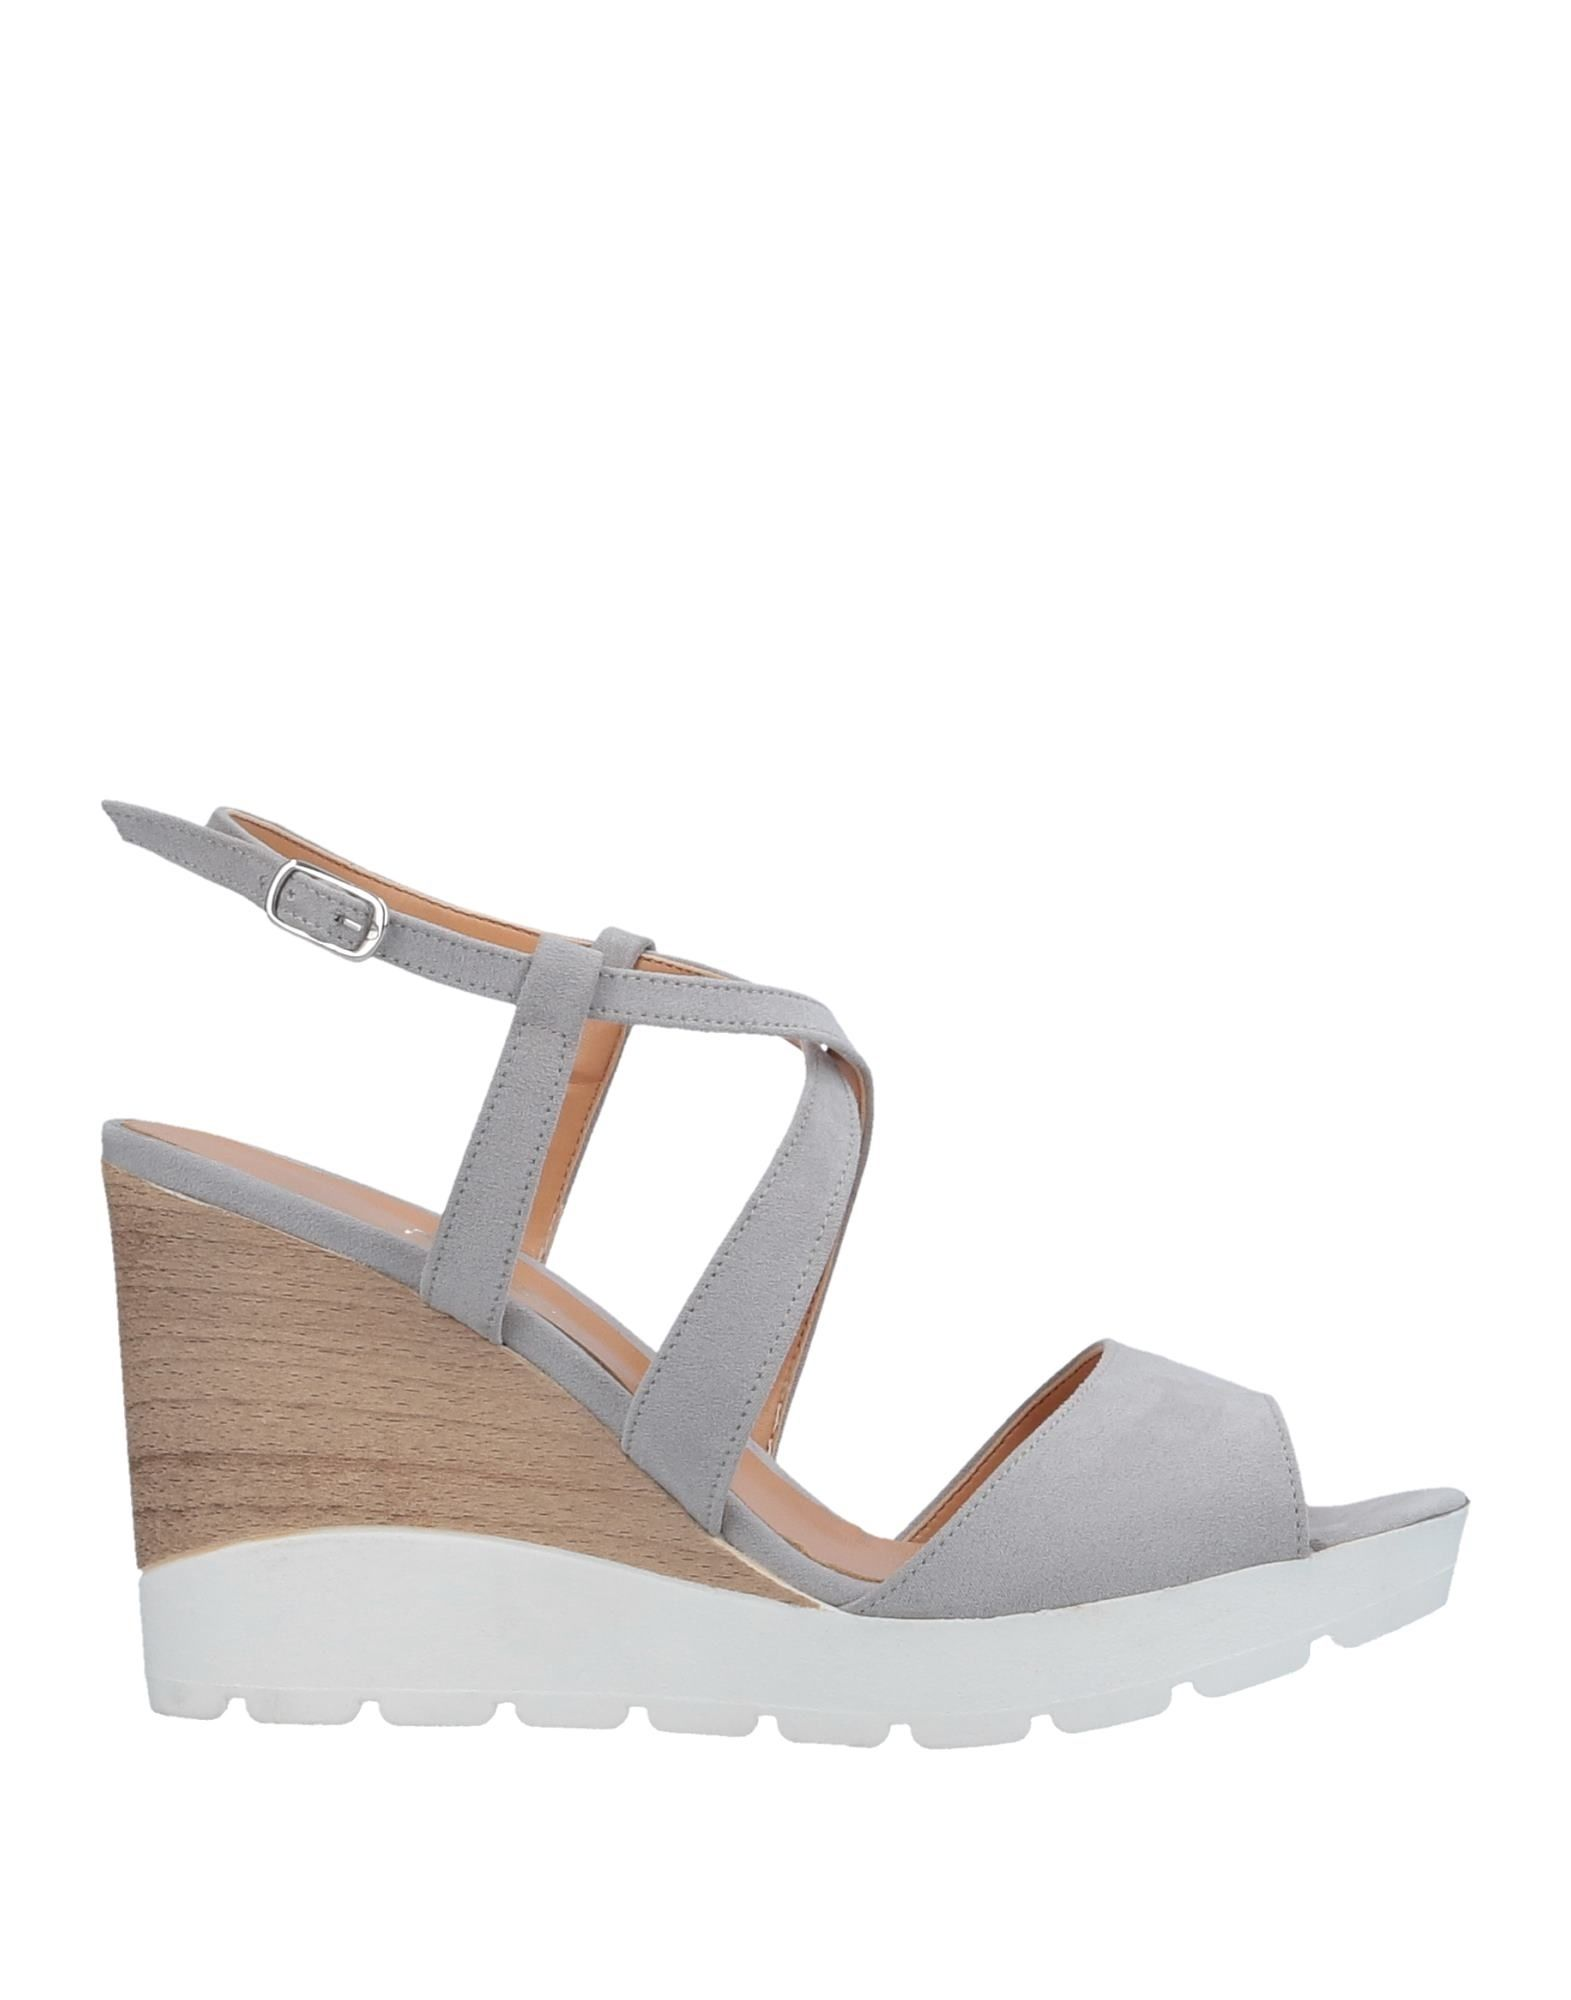 Mercante Di Fiori Sandals - Sandals Women Mercante Di Fiori Sandals - online on  Canada - 11509058TJ 8221ba